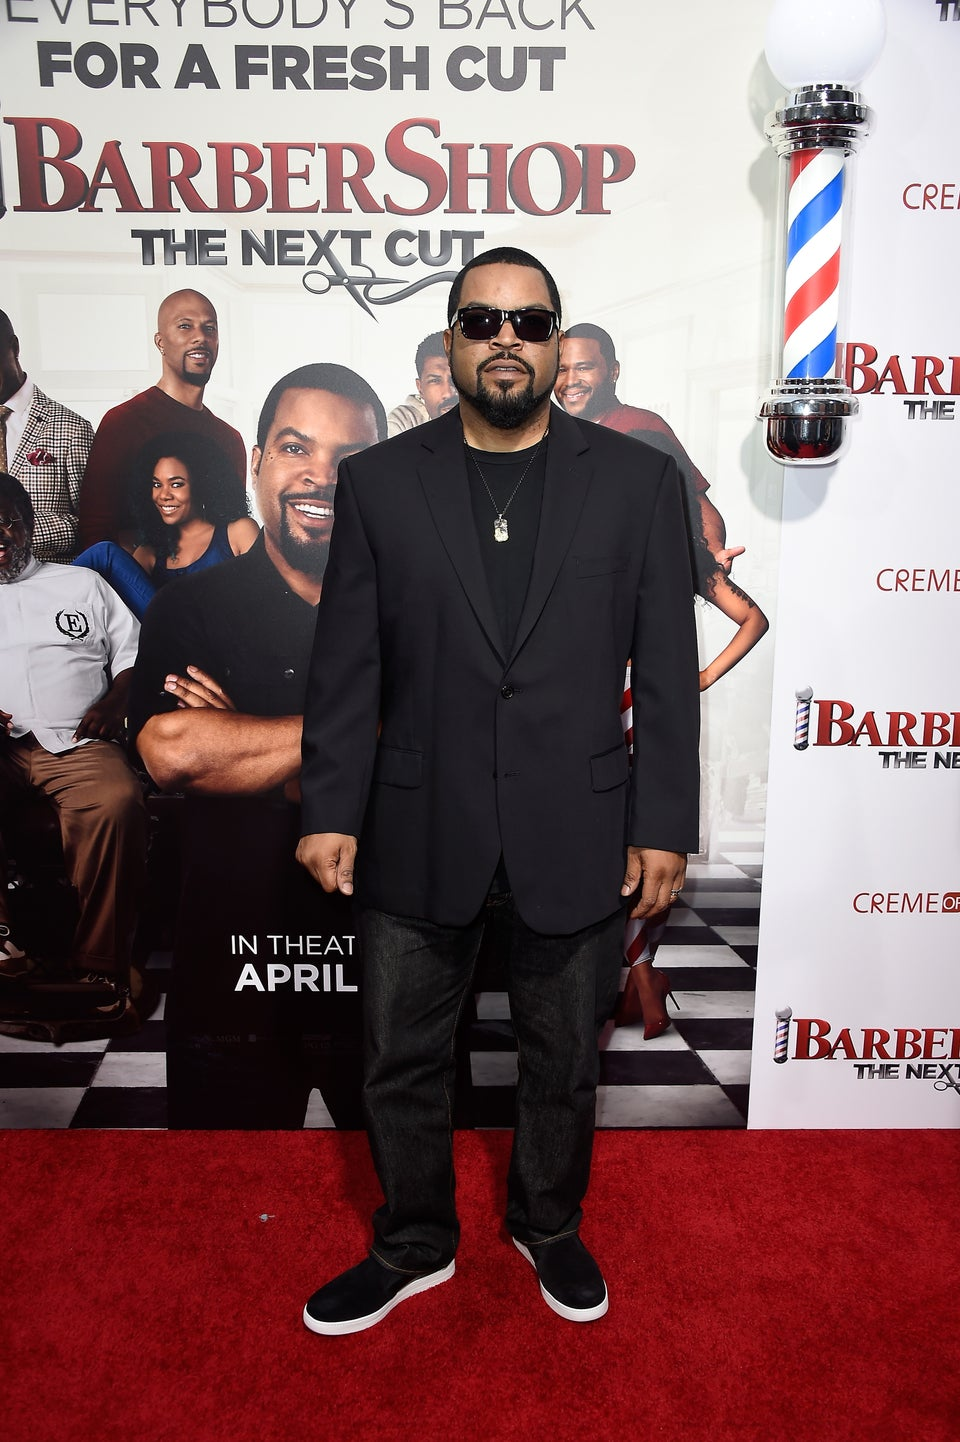 Ice Cube Speaks on Racial Justice: 'A Lot of People Blur Black Lives Matter With Black-on-Black Crime'